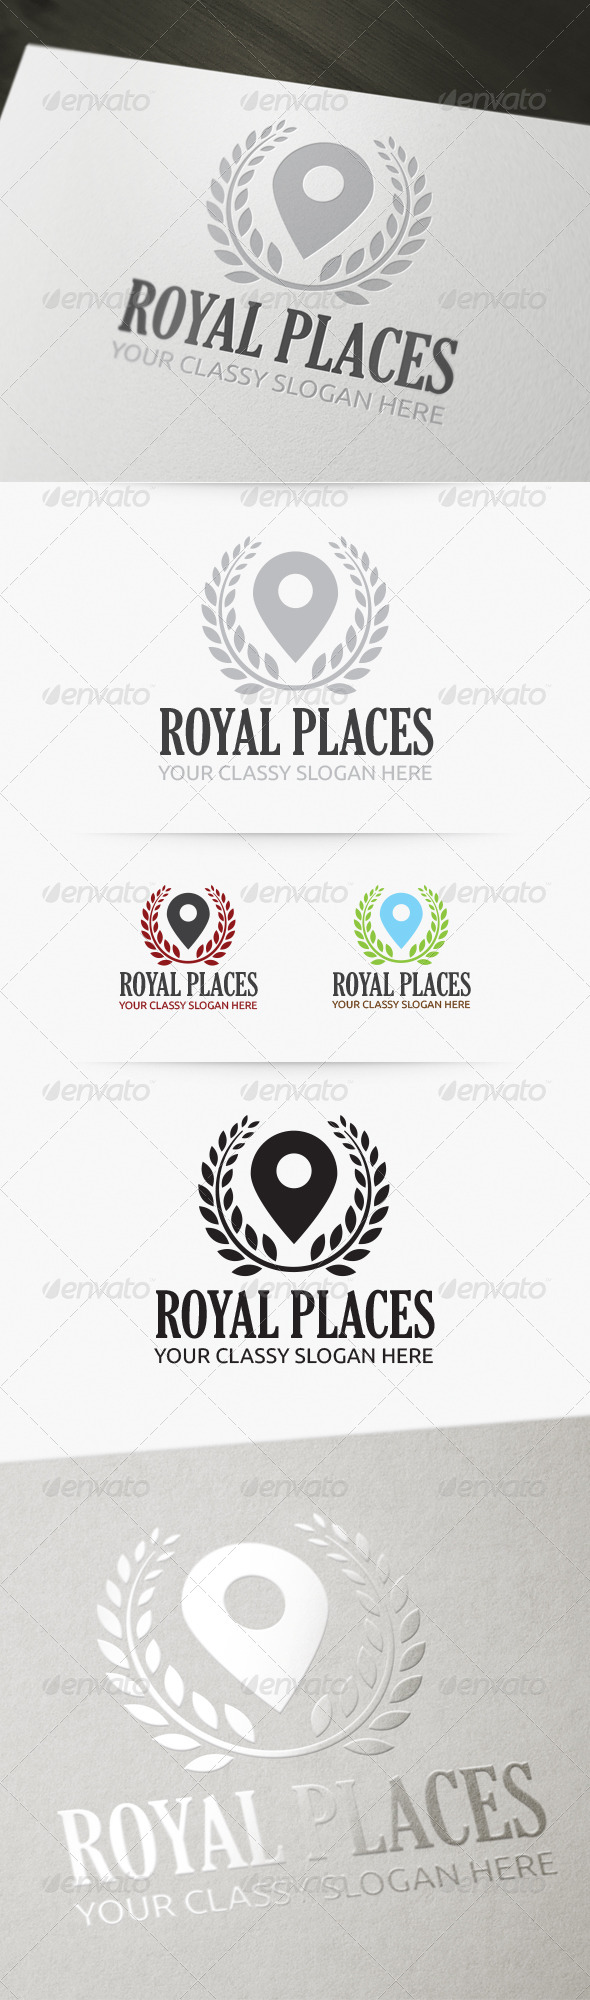 Royal Places Logo - Symbols Logo Templates